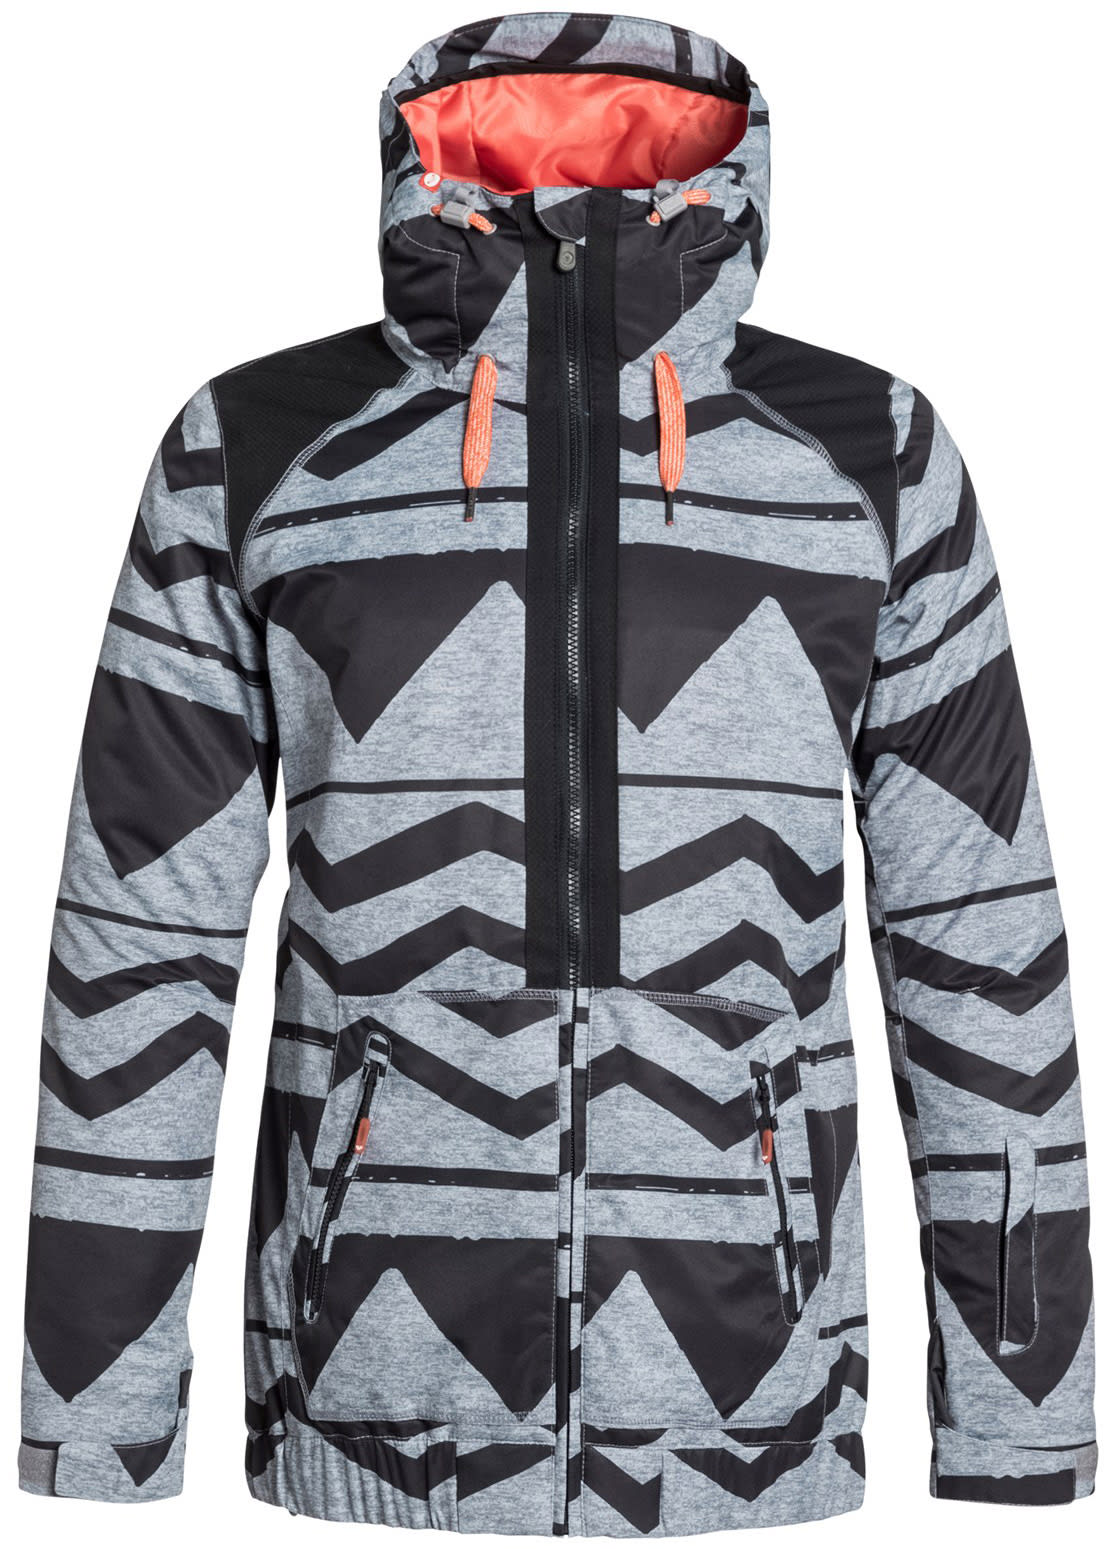 On Sale Roxy Valley Hoodie Snowboard Jacket Womens Up To